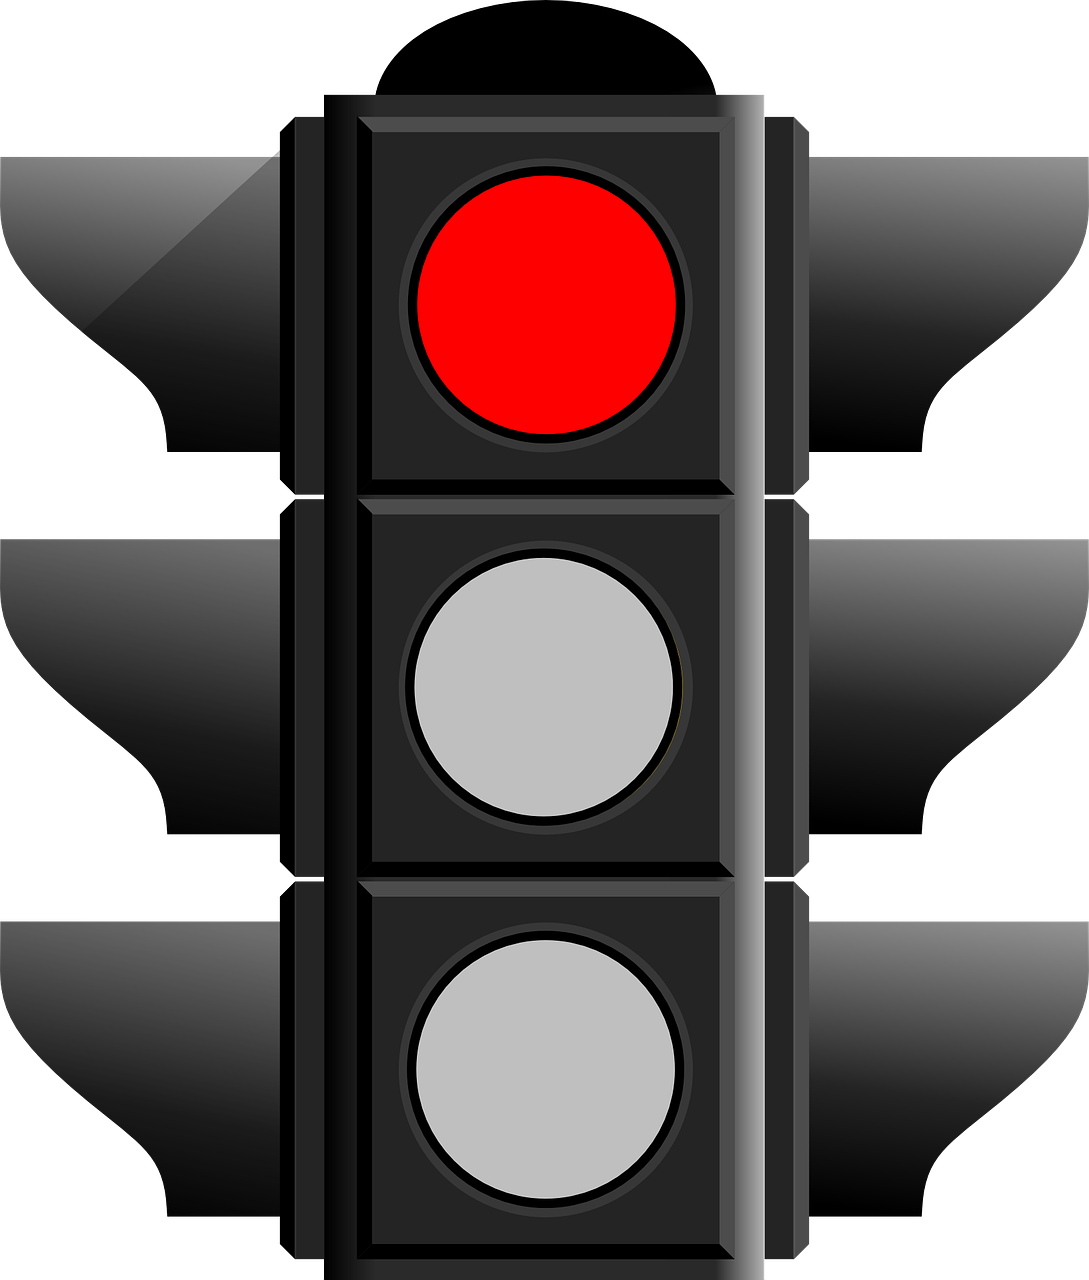 traffic-light-306388_1280